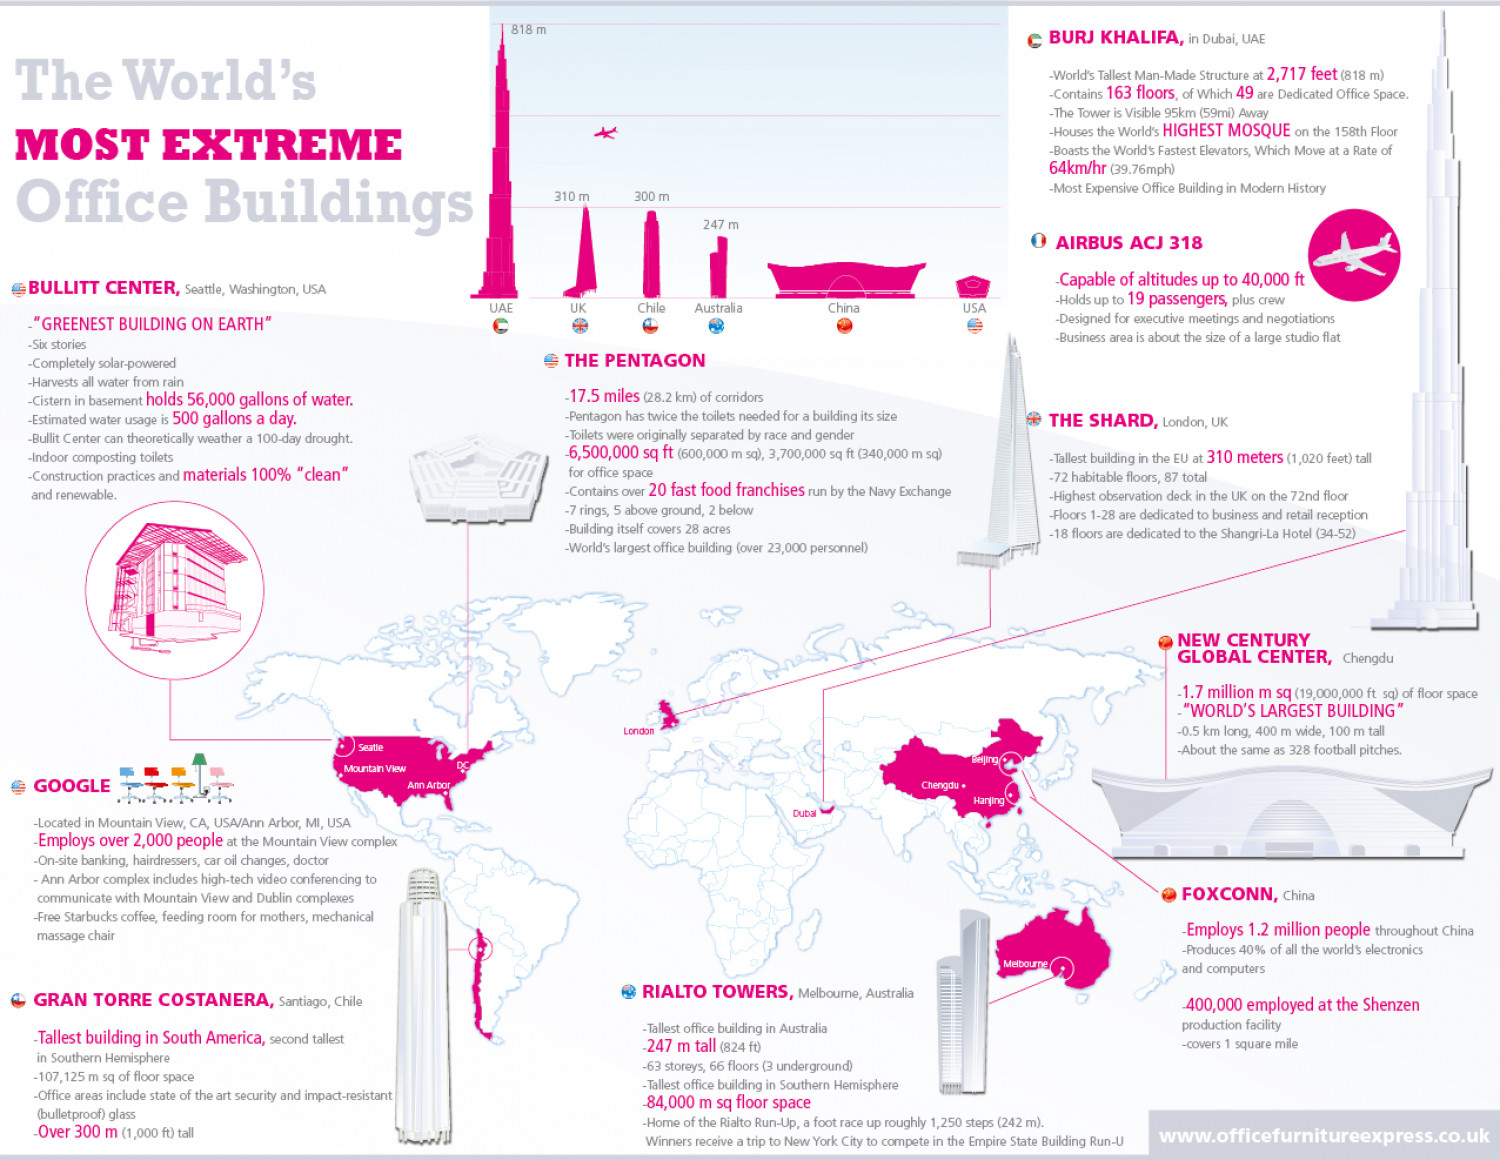 The World's Most Extreme Office Buildings Infographic